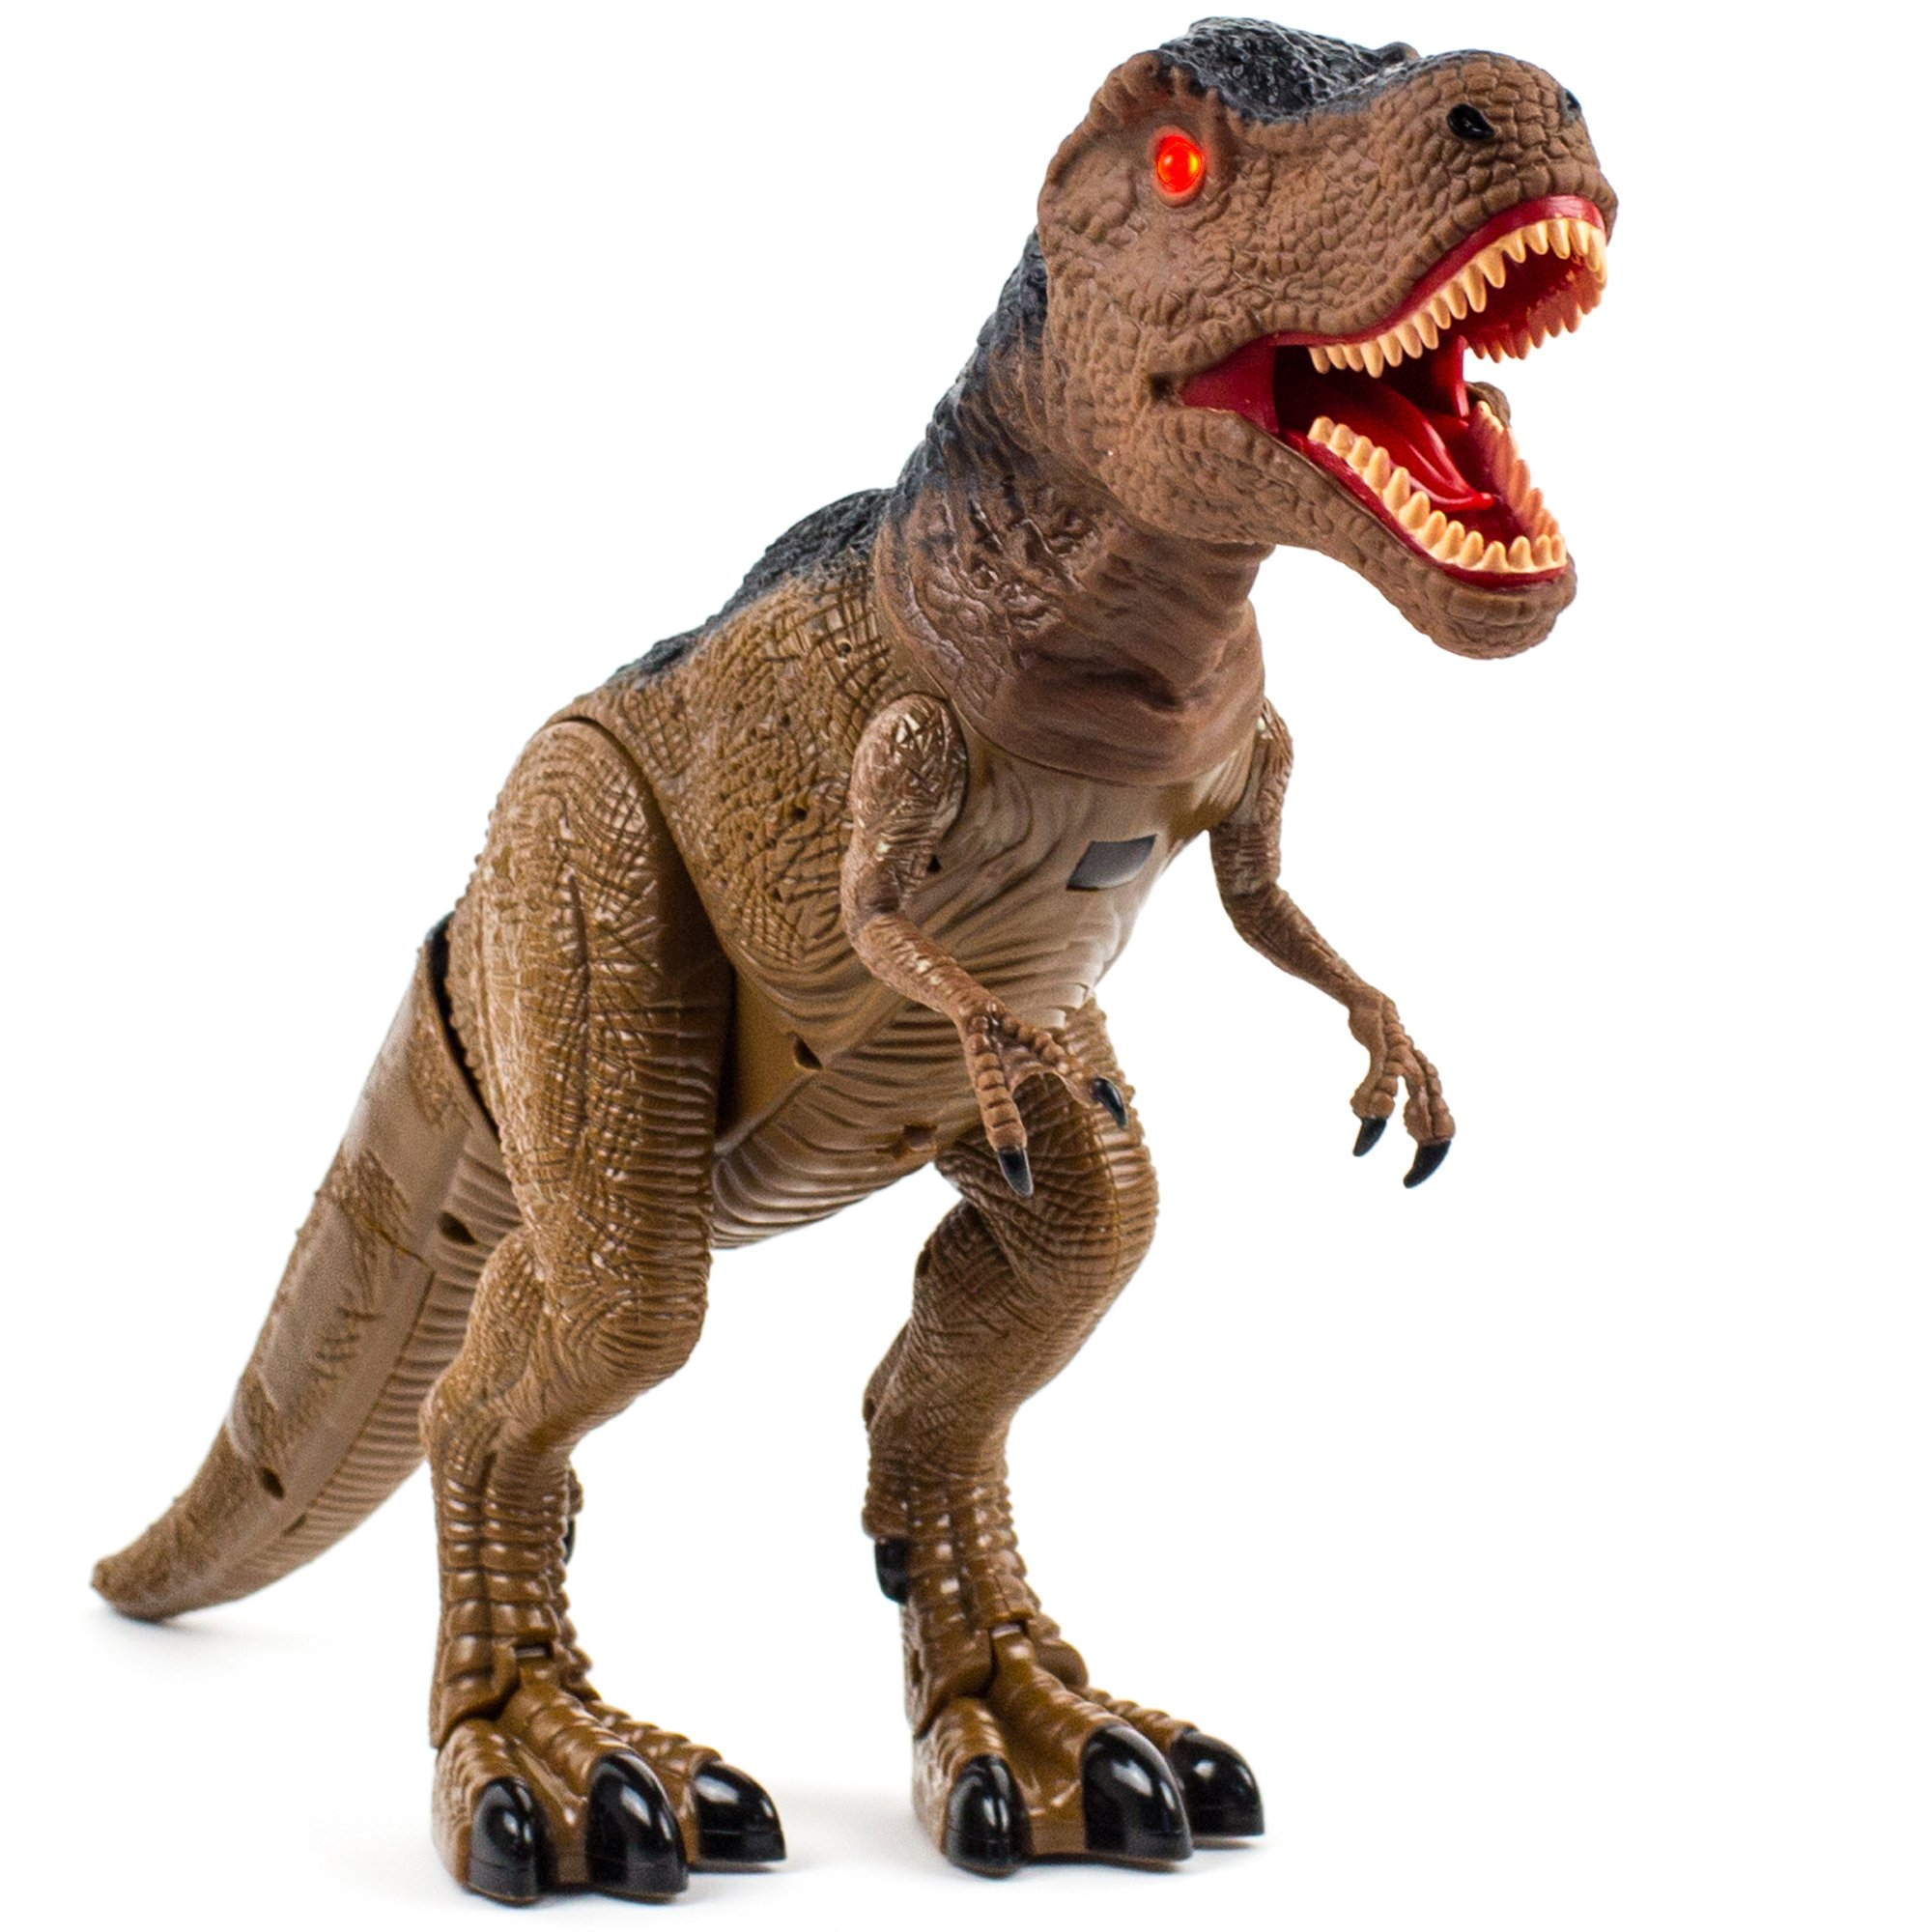 Toysery Jurassic World Dinosaur Toys with Light Up Eyes and Roaring Sound Walking Dinosaur Toy Set for 3-12 Year Boys and Girls - Perfect Remote Control Dinosaur Gifts for Birthdays by Toysery (Image #2)